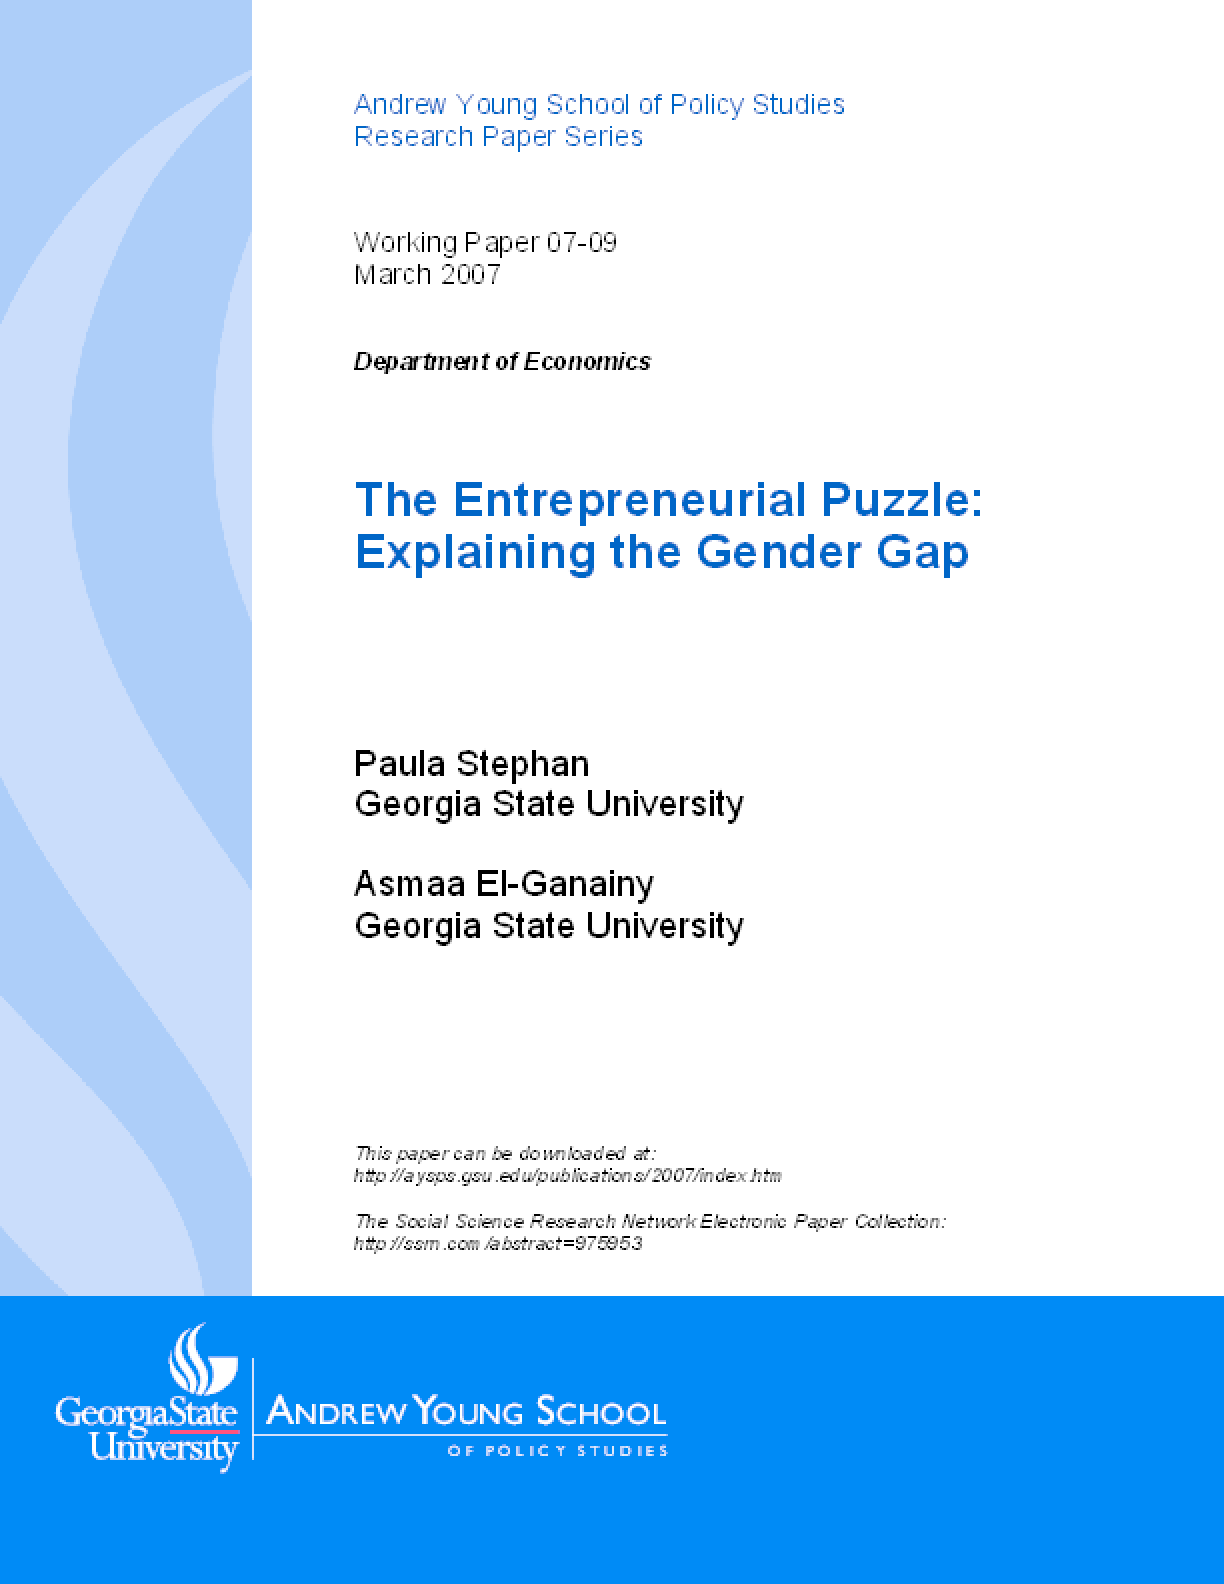 The Entrepreneurial Puzzle: Explaining the Gender Gap